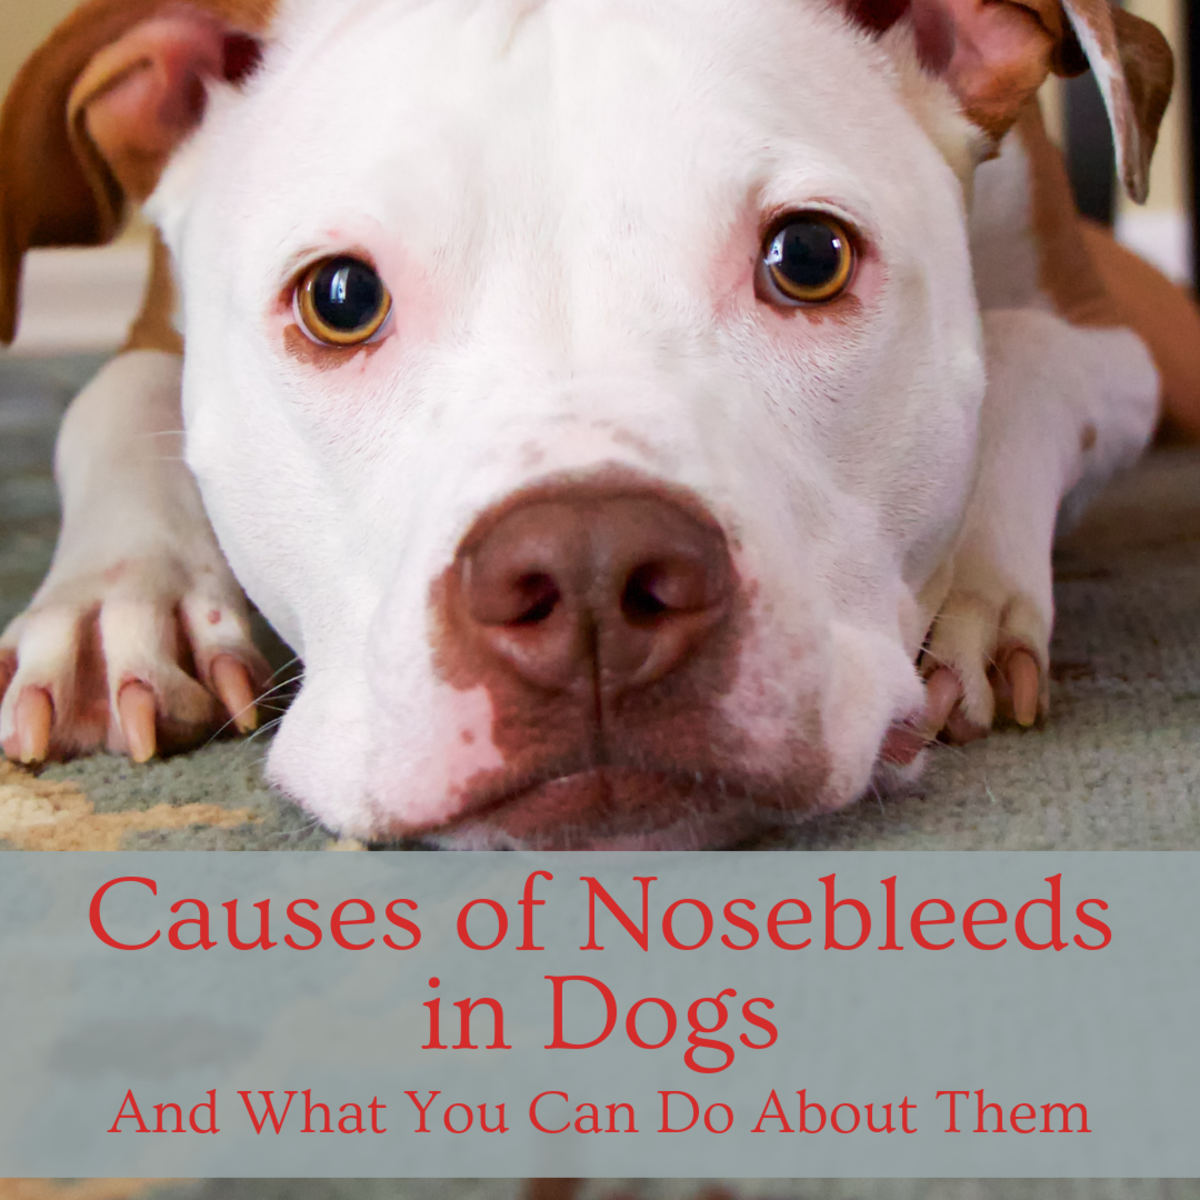 Causes of Nosebleeds in Dogs